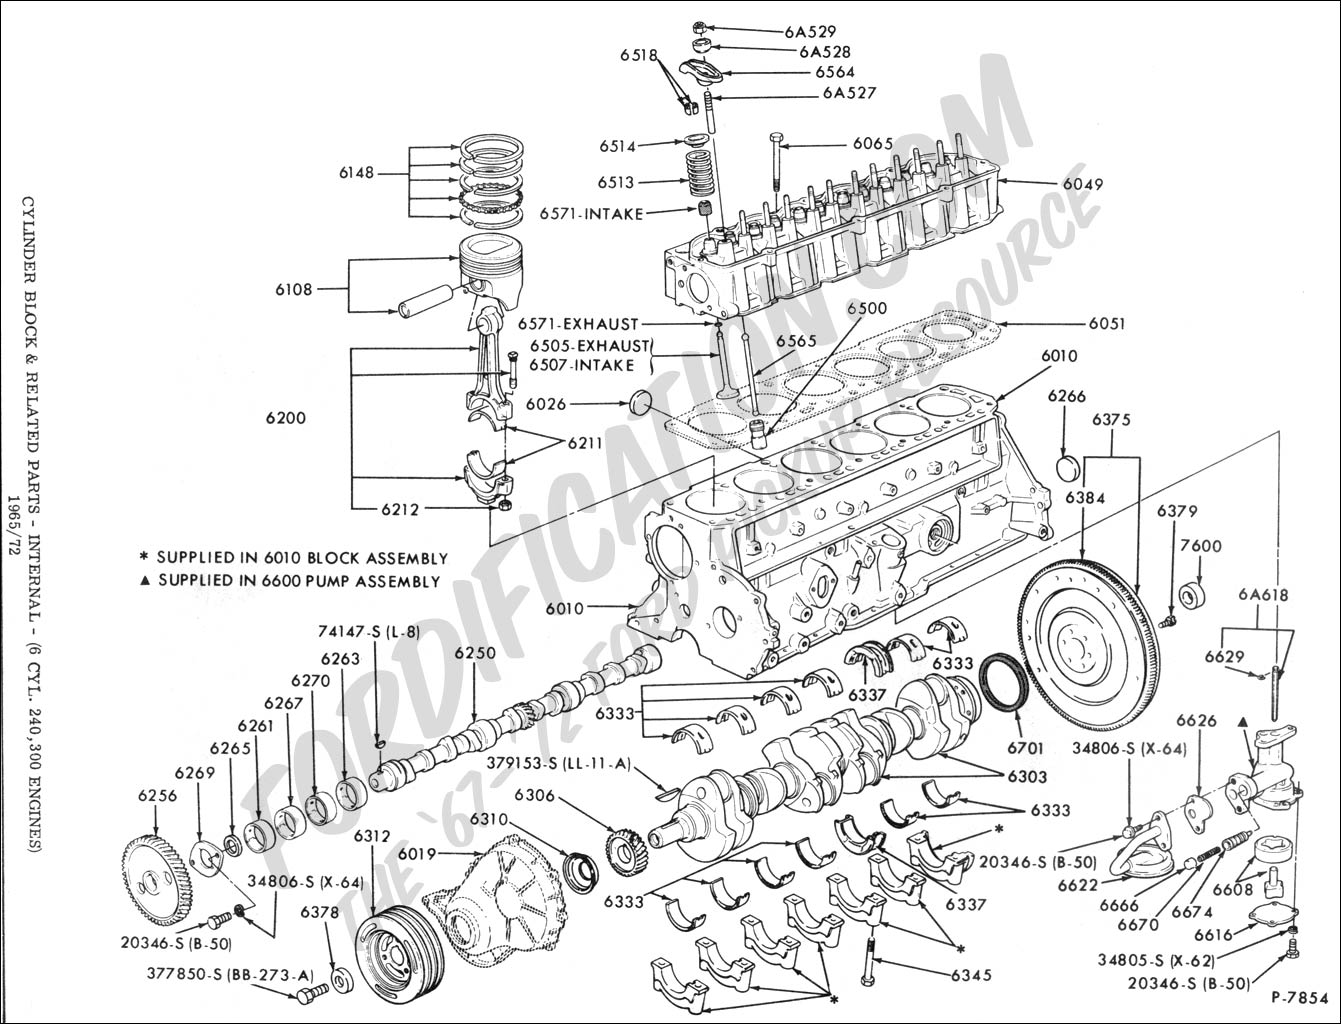 bsa engine schematics